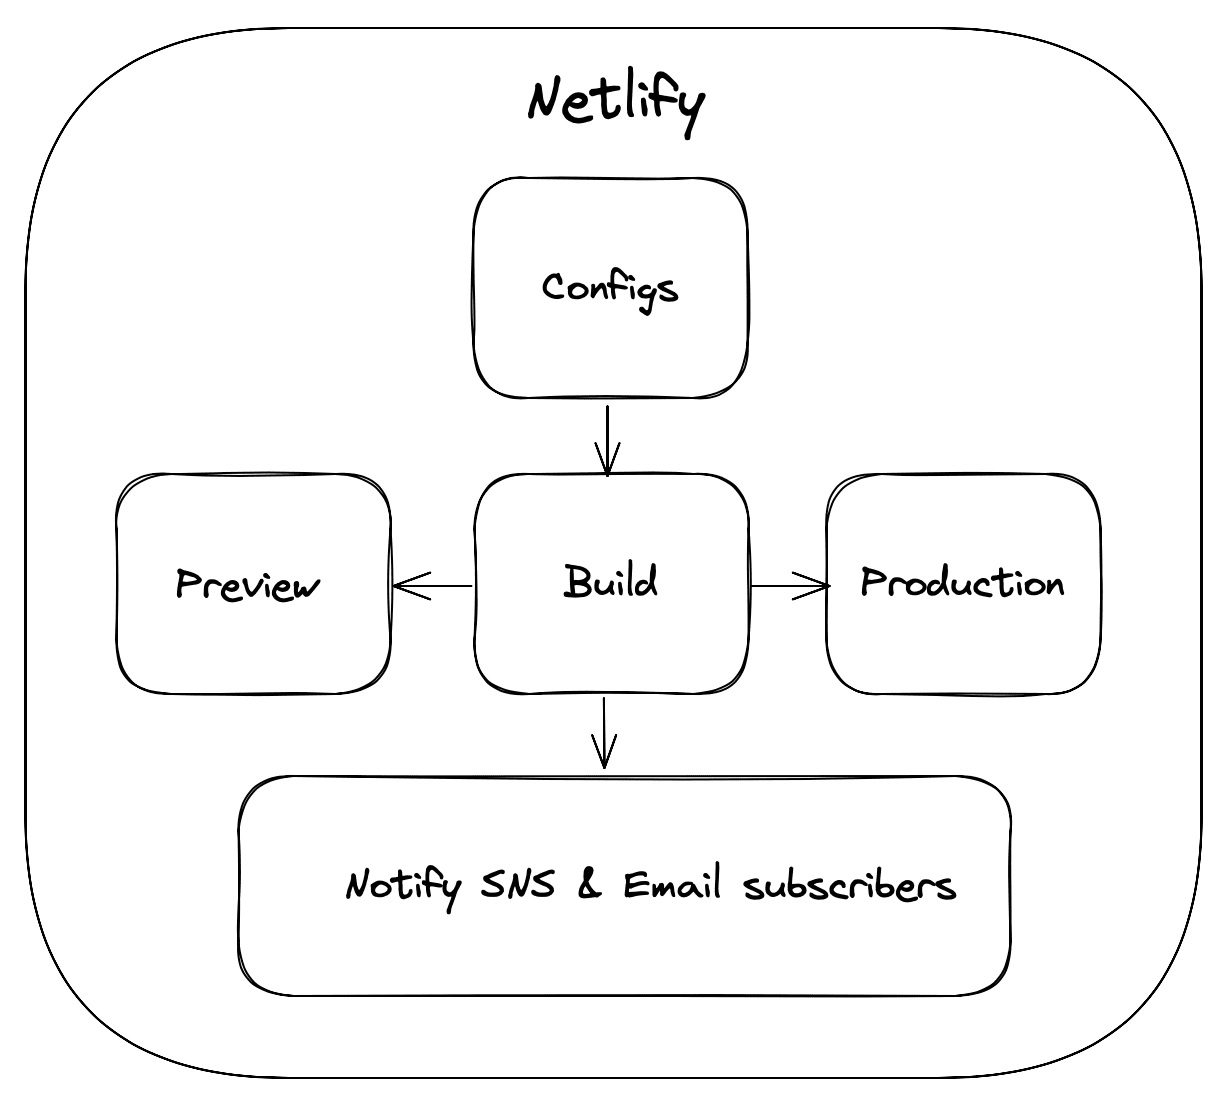 images/netlify_builds.png